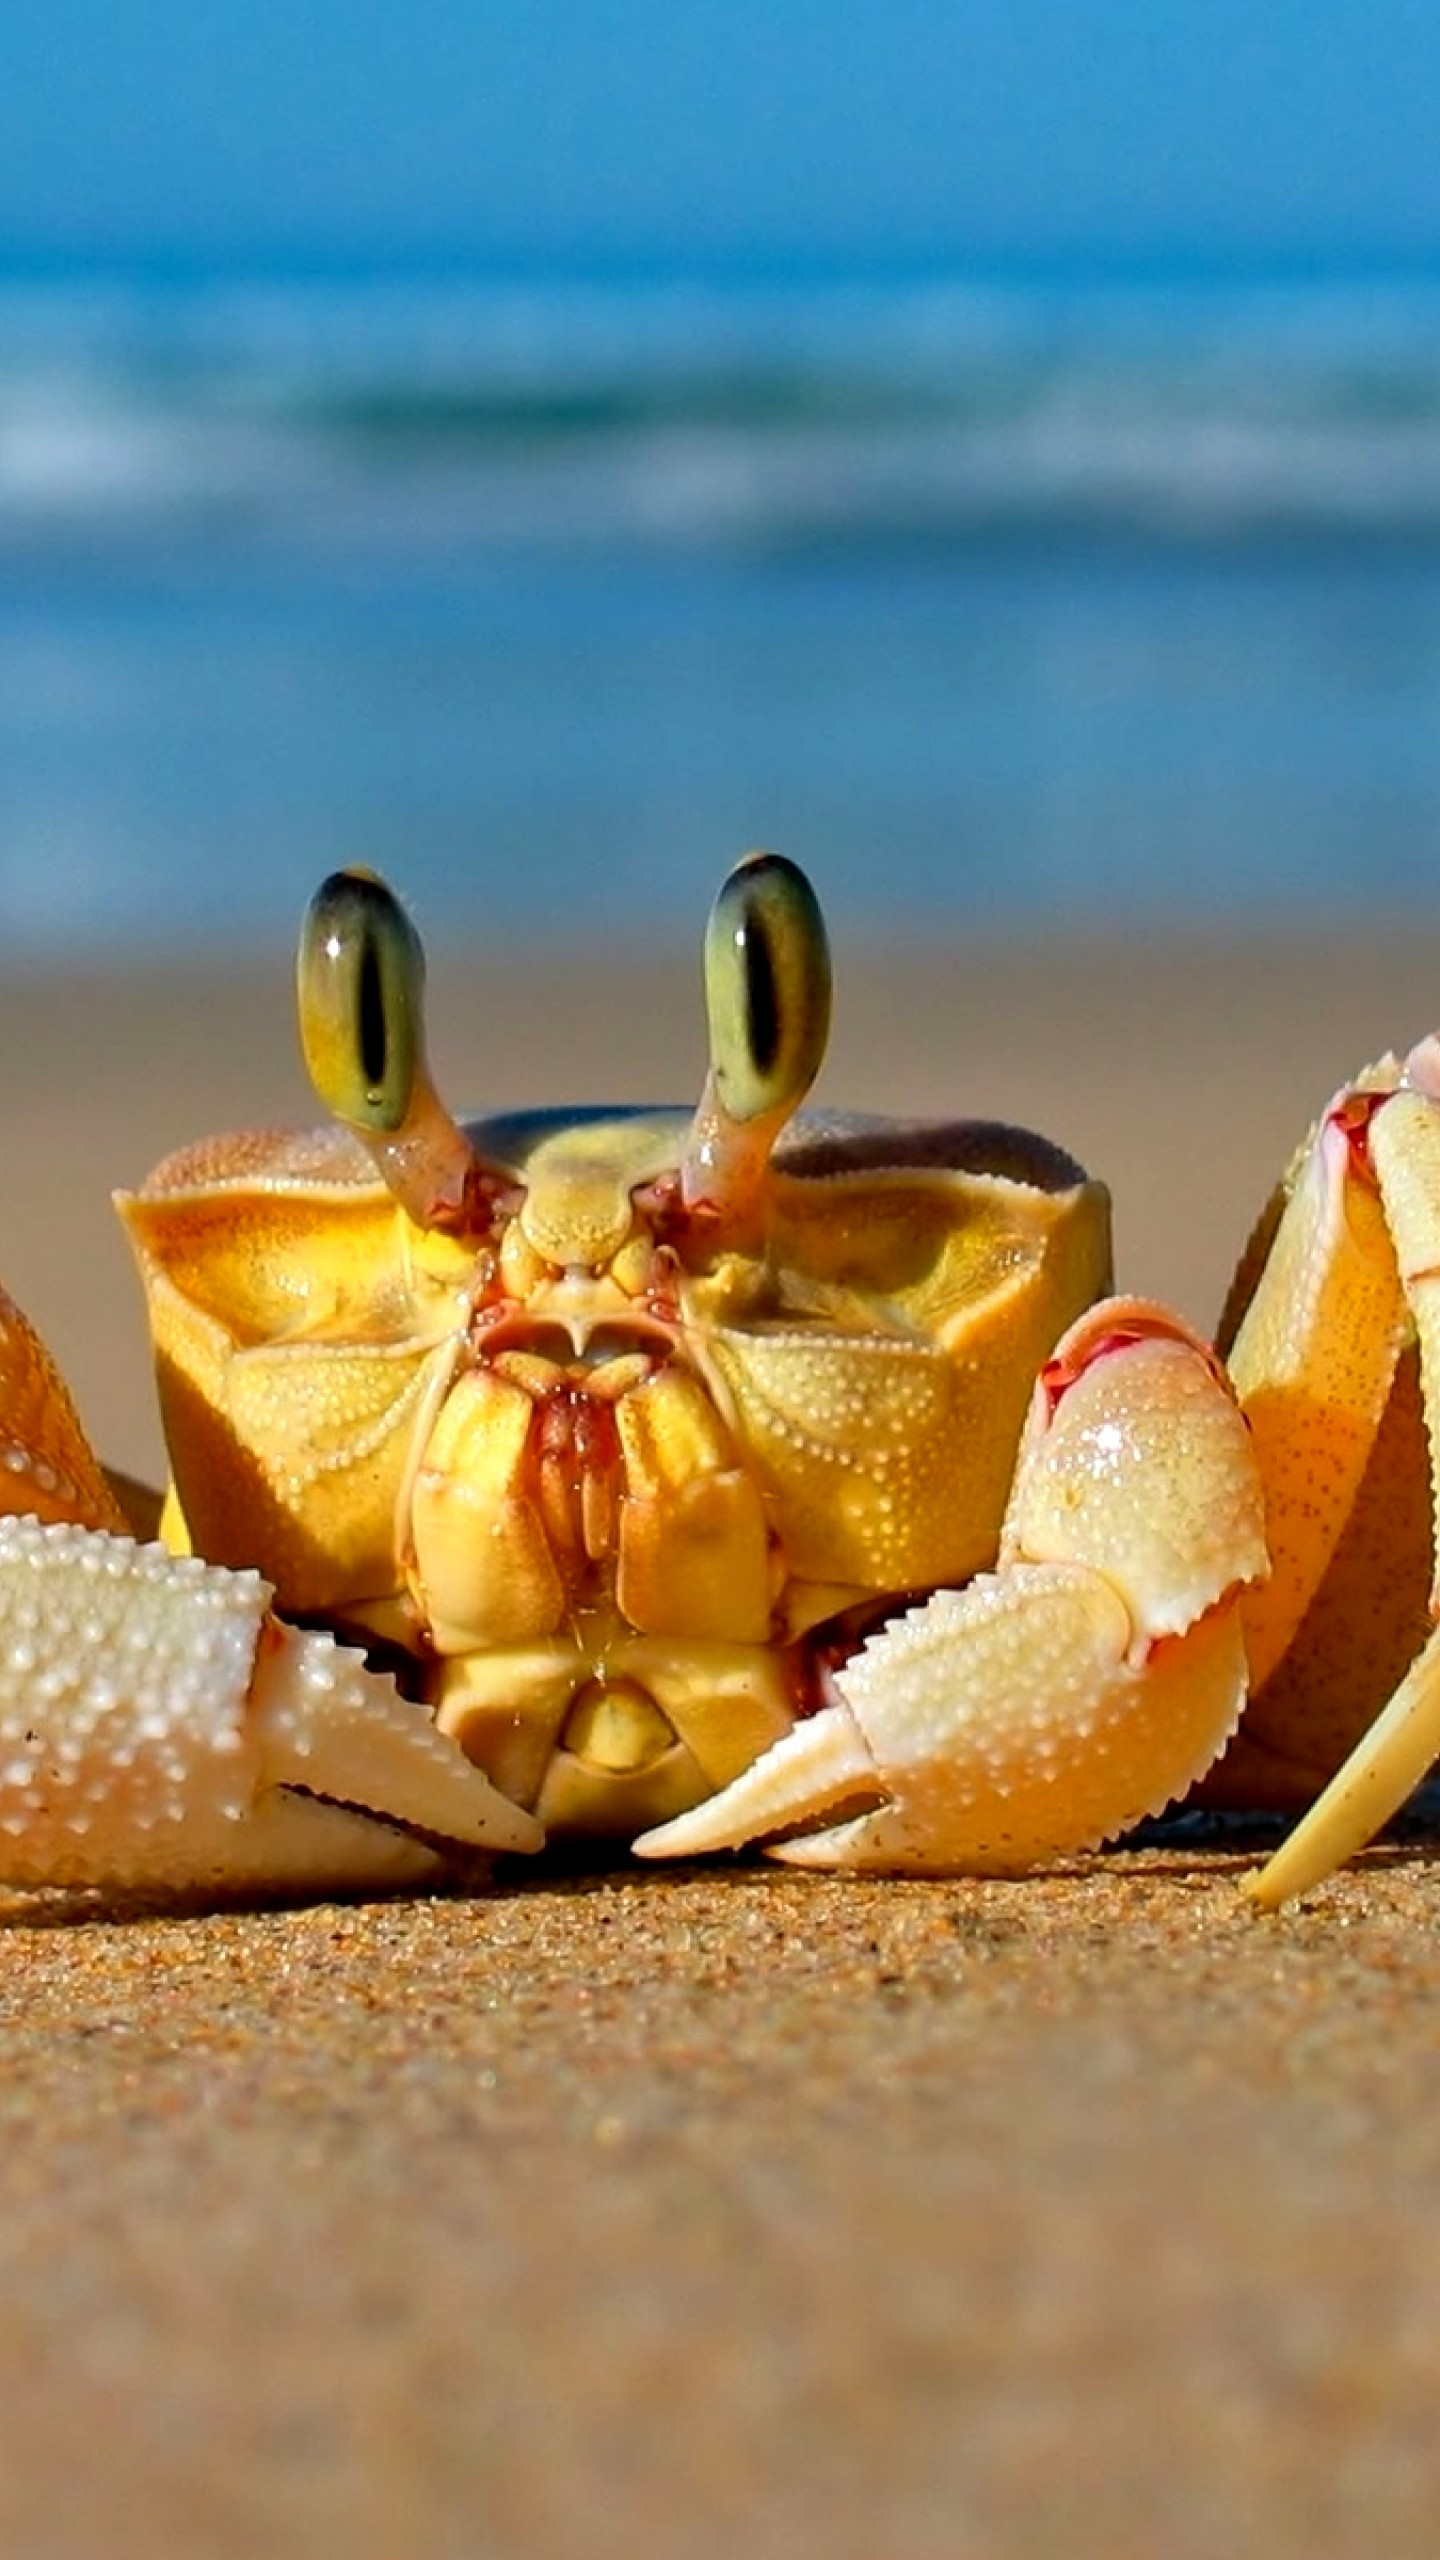 Wallpaper Crab, Mediterranean Sea, Sand, Funny, Cute